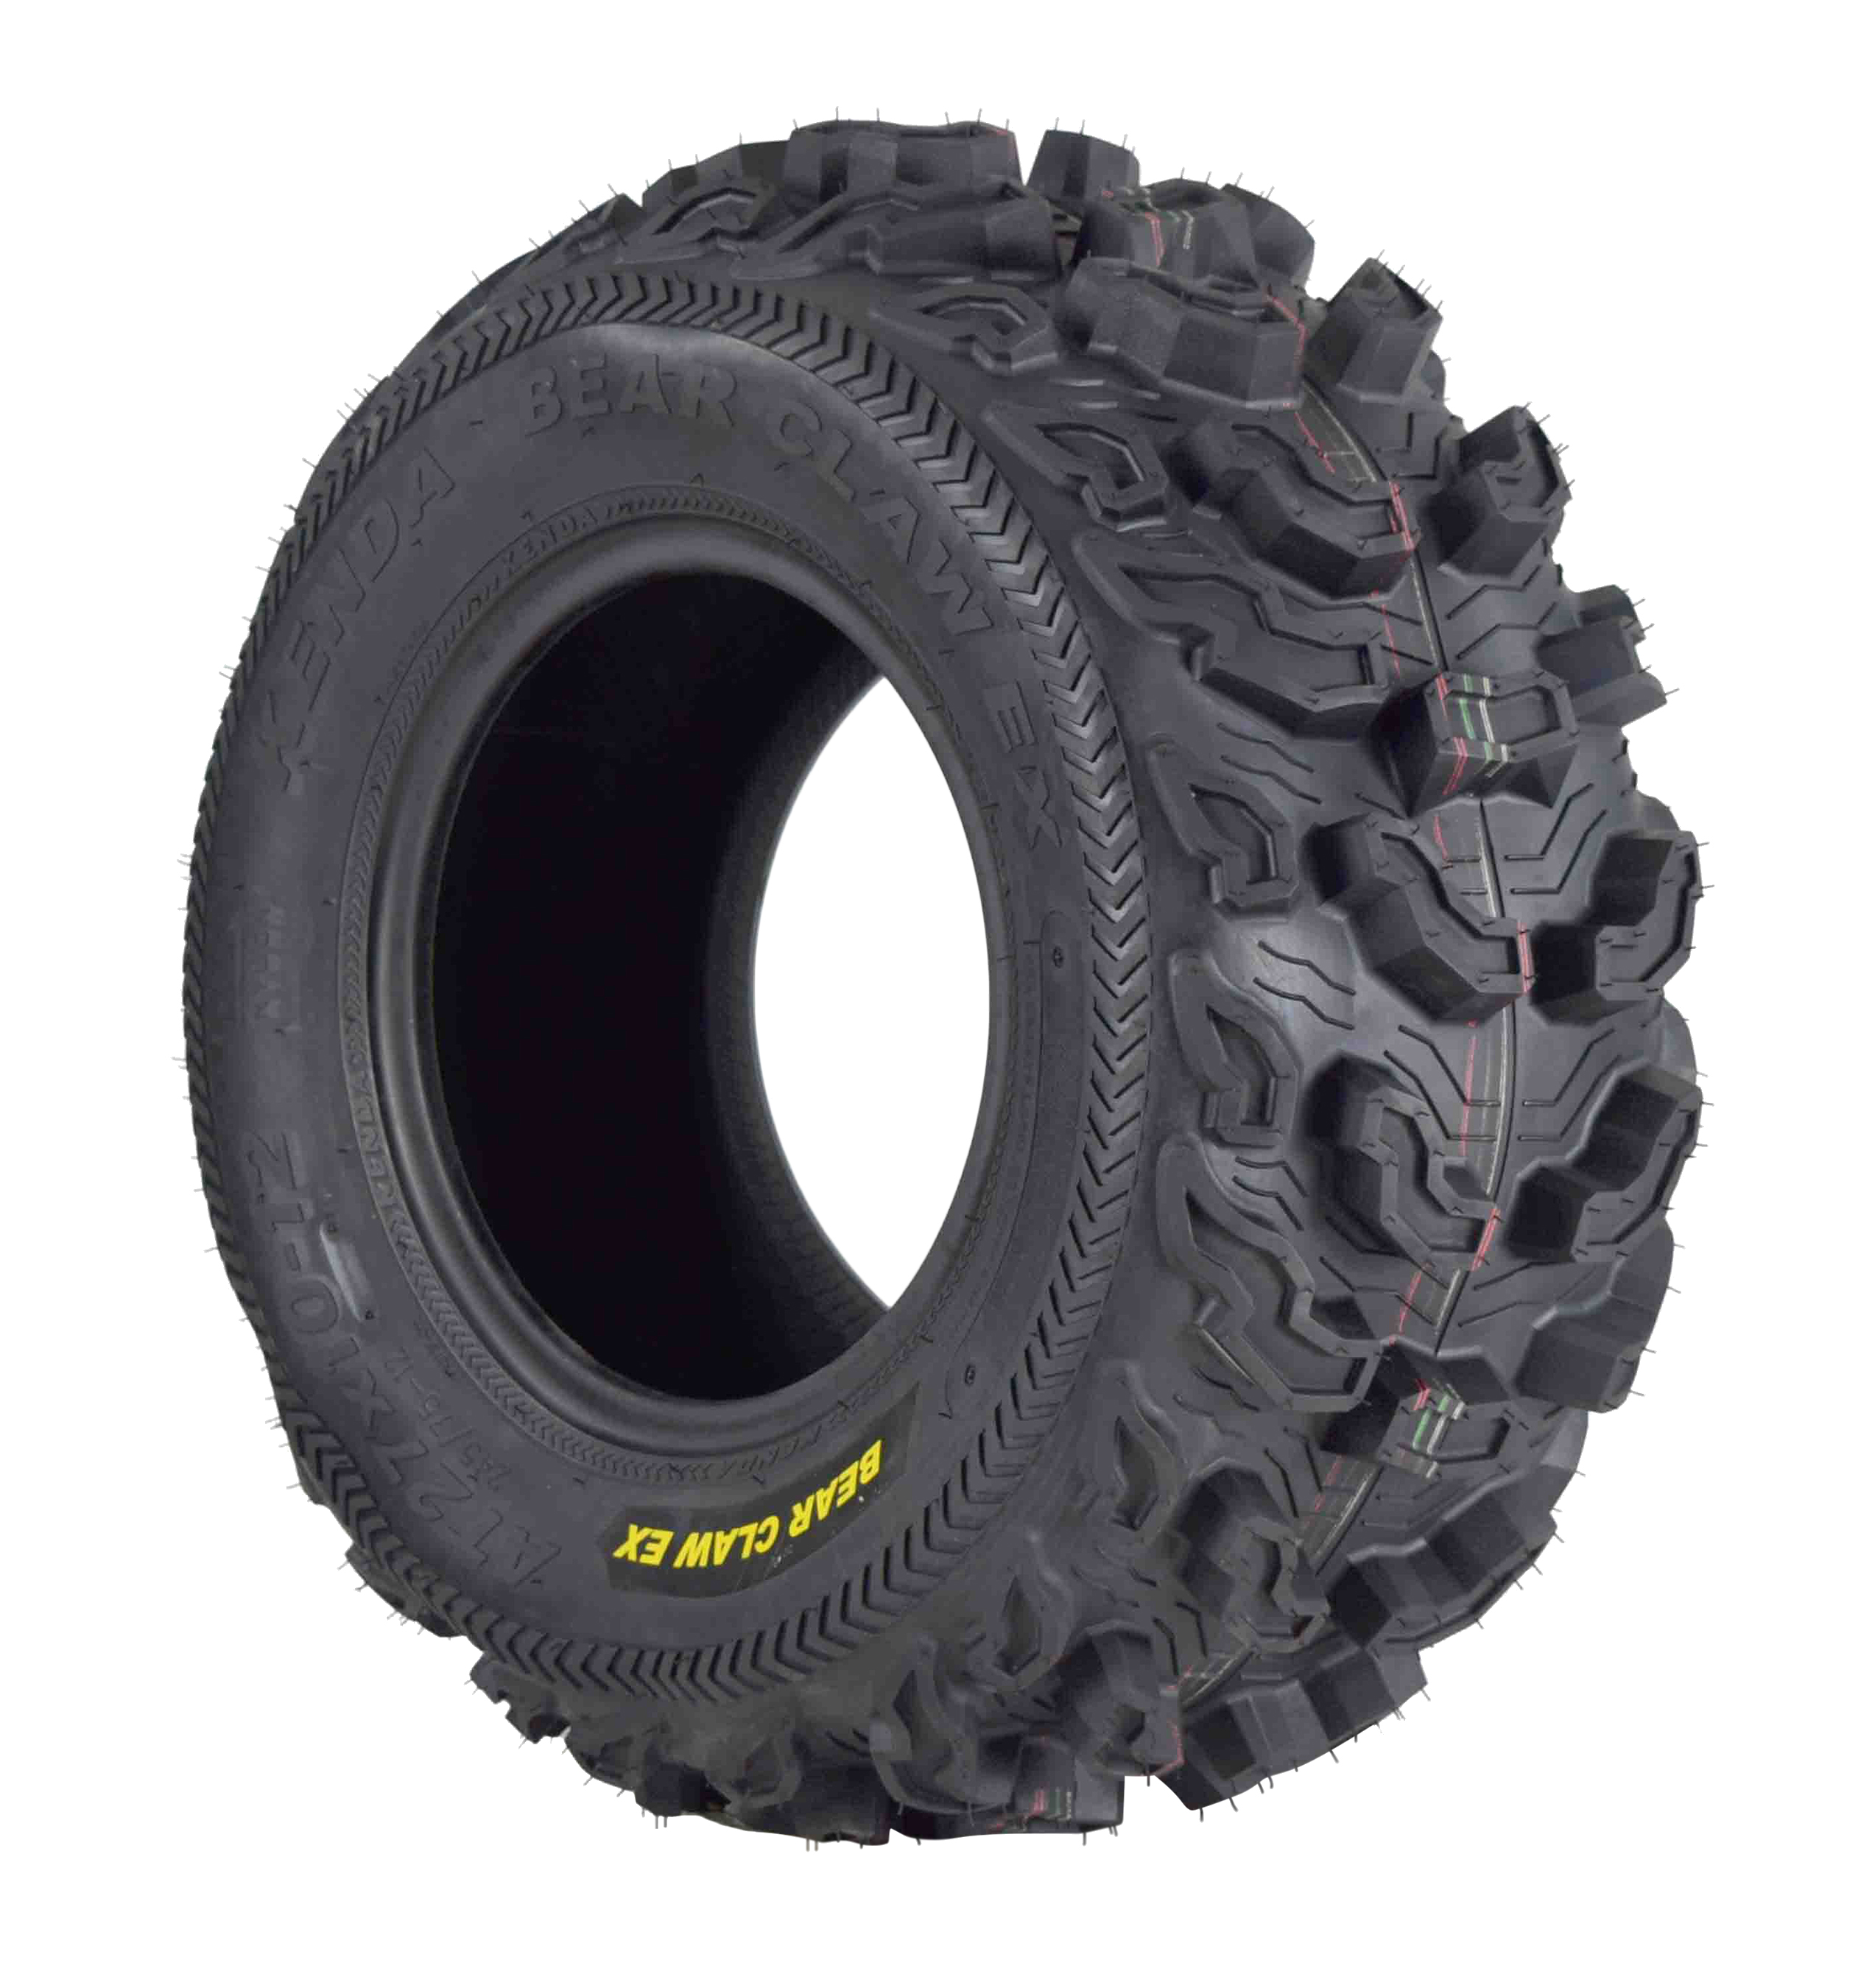 Kenda-Bear-Claw-EX-27x10-12-Front-ATV-6-PLY-Tire-Bearclaw-27x10x12-Single-Tire-image-1